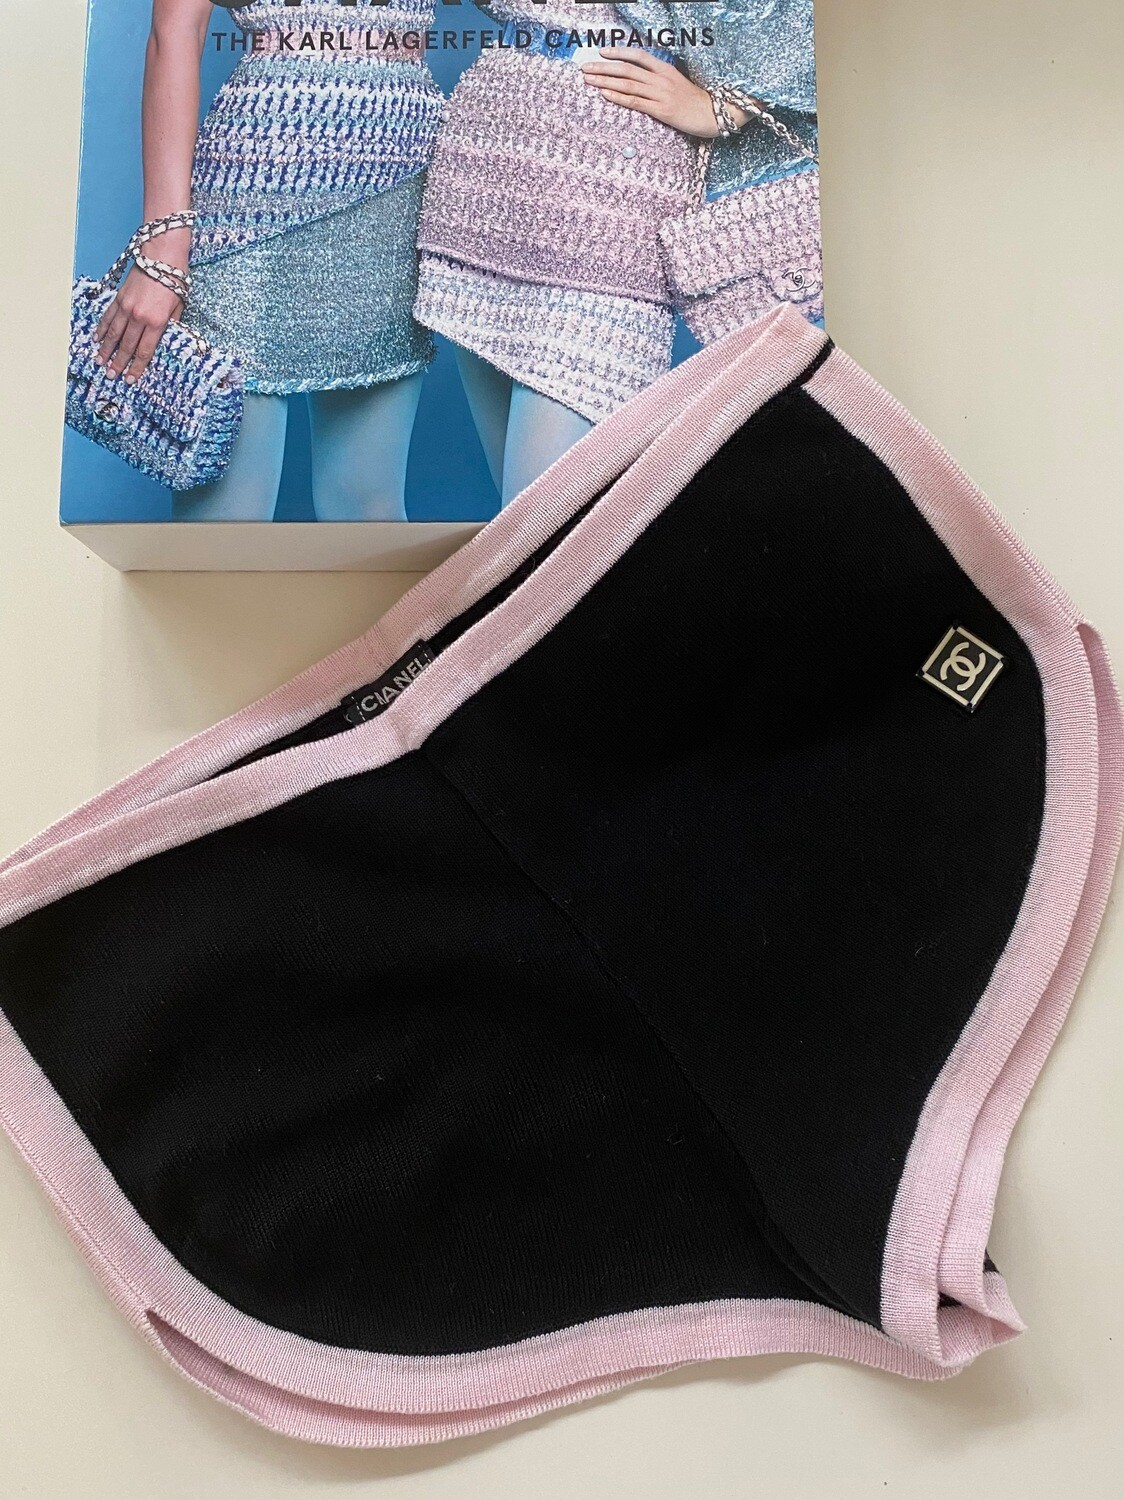 CHANEL CC LOGO KNIT PINK BLACK SHORTS 03P COLLECTION 38